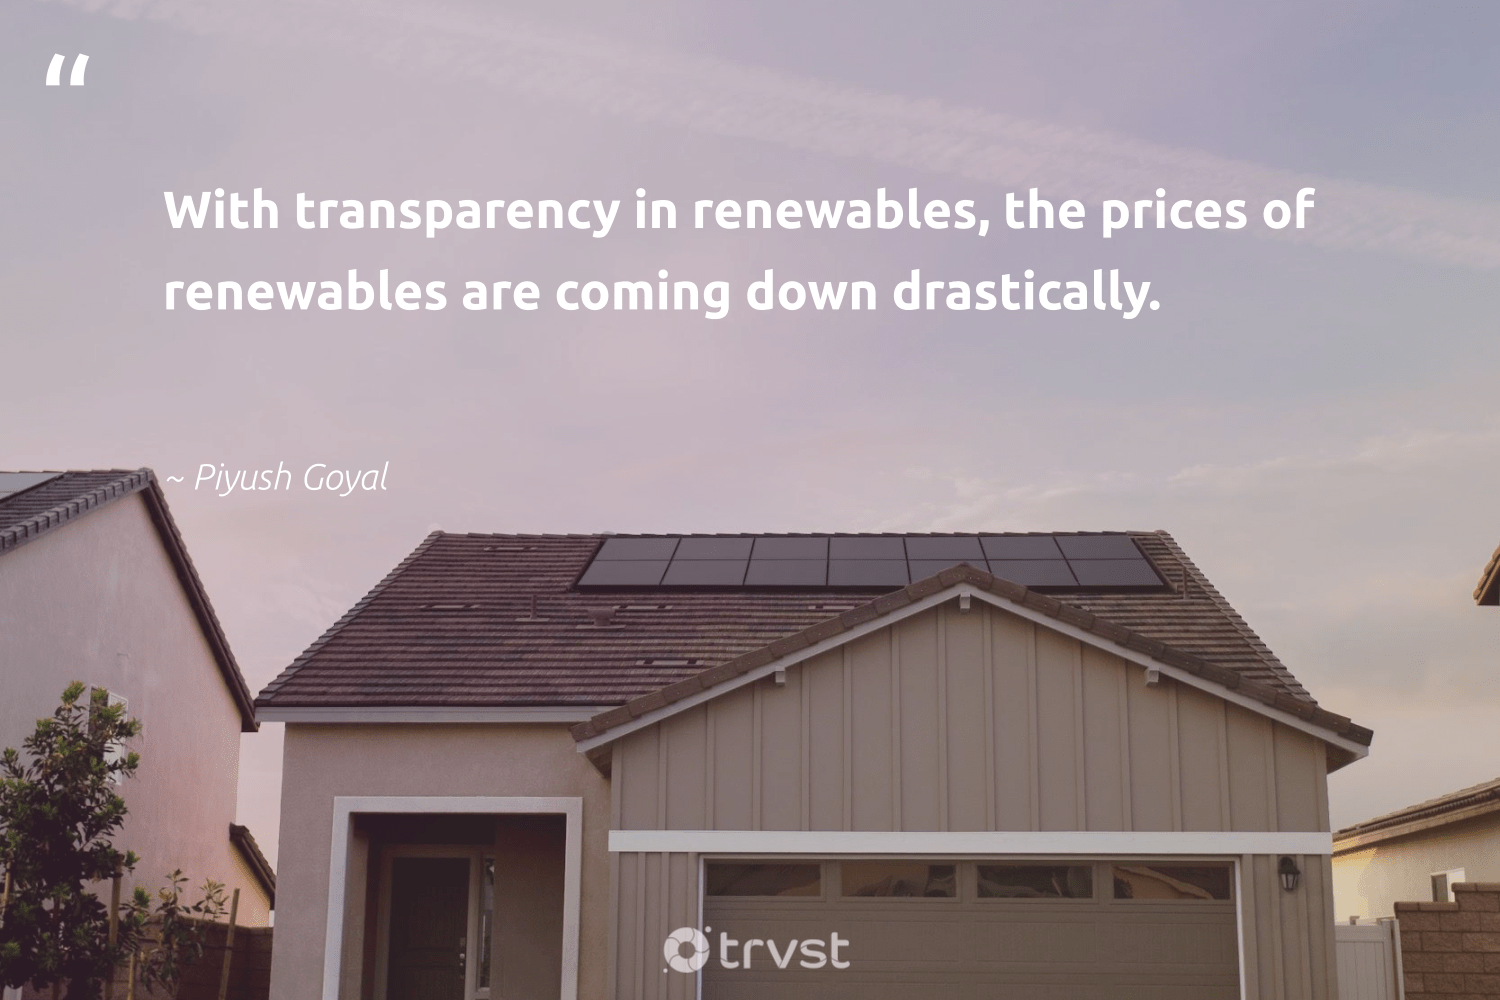 """""""With transparency in renewables, the prices of renewables are coming down drastically.""""  - Piyush Goyal #trvst #quotes #renewableenergy #renewables #greenenergy #ecofriendly #environment #dotherightthing #lowcarbon #cop21 #sustainableliving #gogreen"""